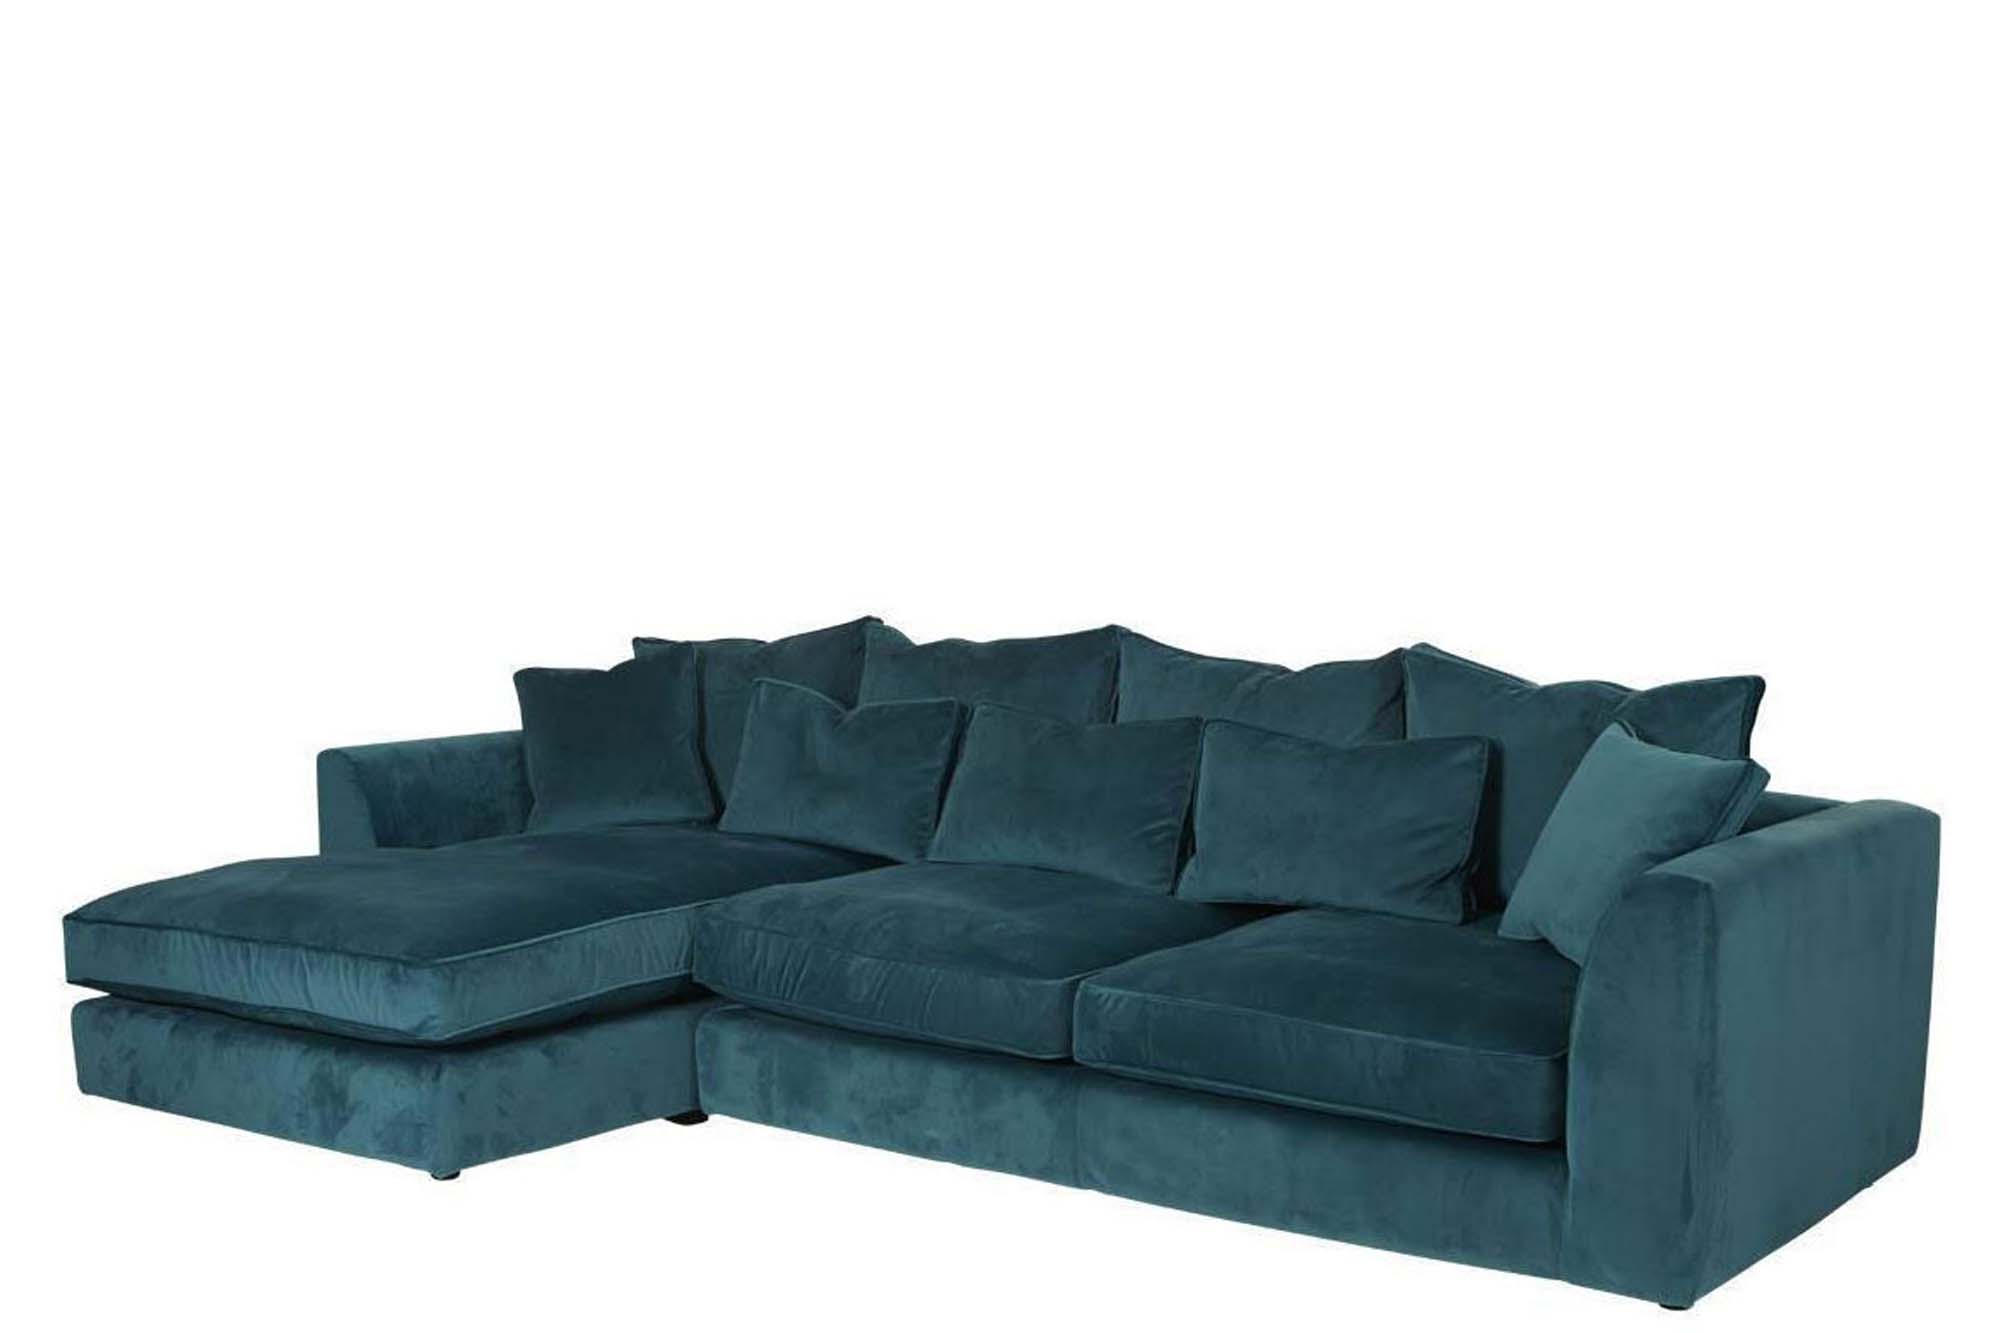 duck feather corner sofa inflatable wilkinsons bossanova right hand side large images